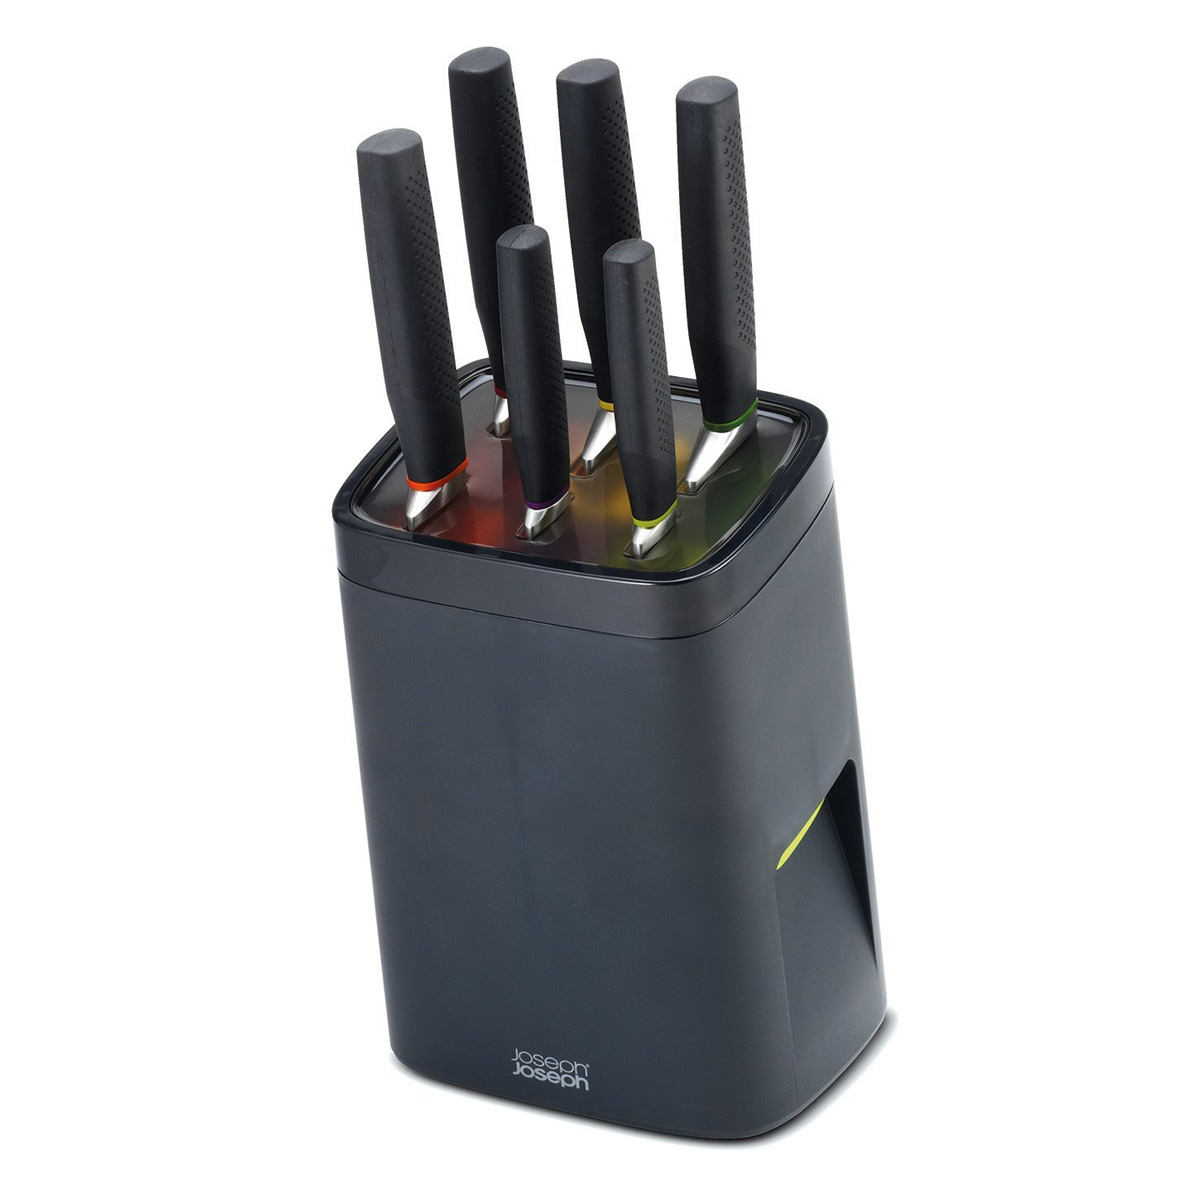 Childproof Self-Locking Universal Knife Block - The Green Head